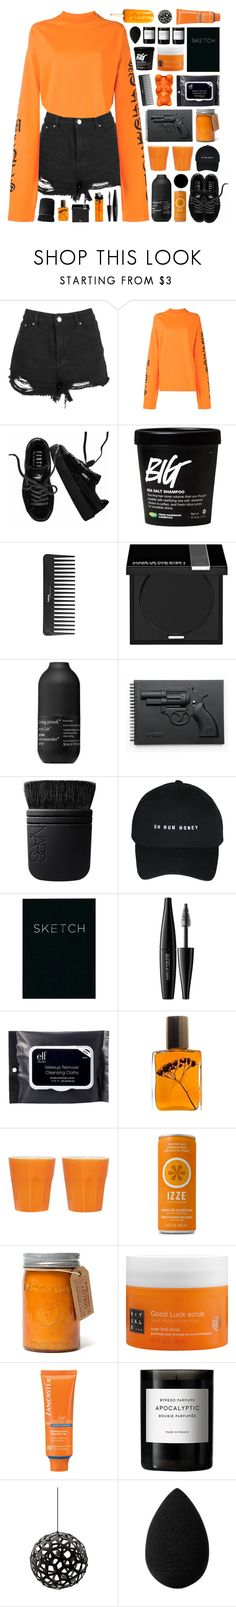 """""""18:34"""" by svga-kookie ❤ liked on Polyvore featuring Boohoo, Vetements, Puma, Sephora Collection, MAKE UP FOR EVER, Living Proof, Revolver, NARS Cosmetics, Piccadilly and e.l.f."""